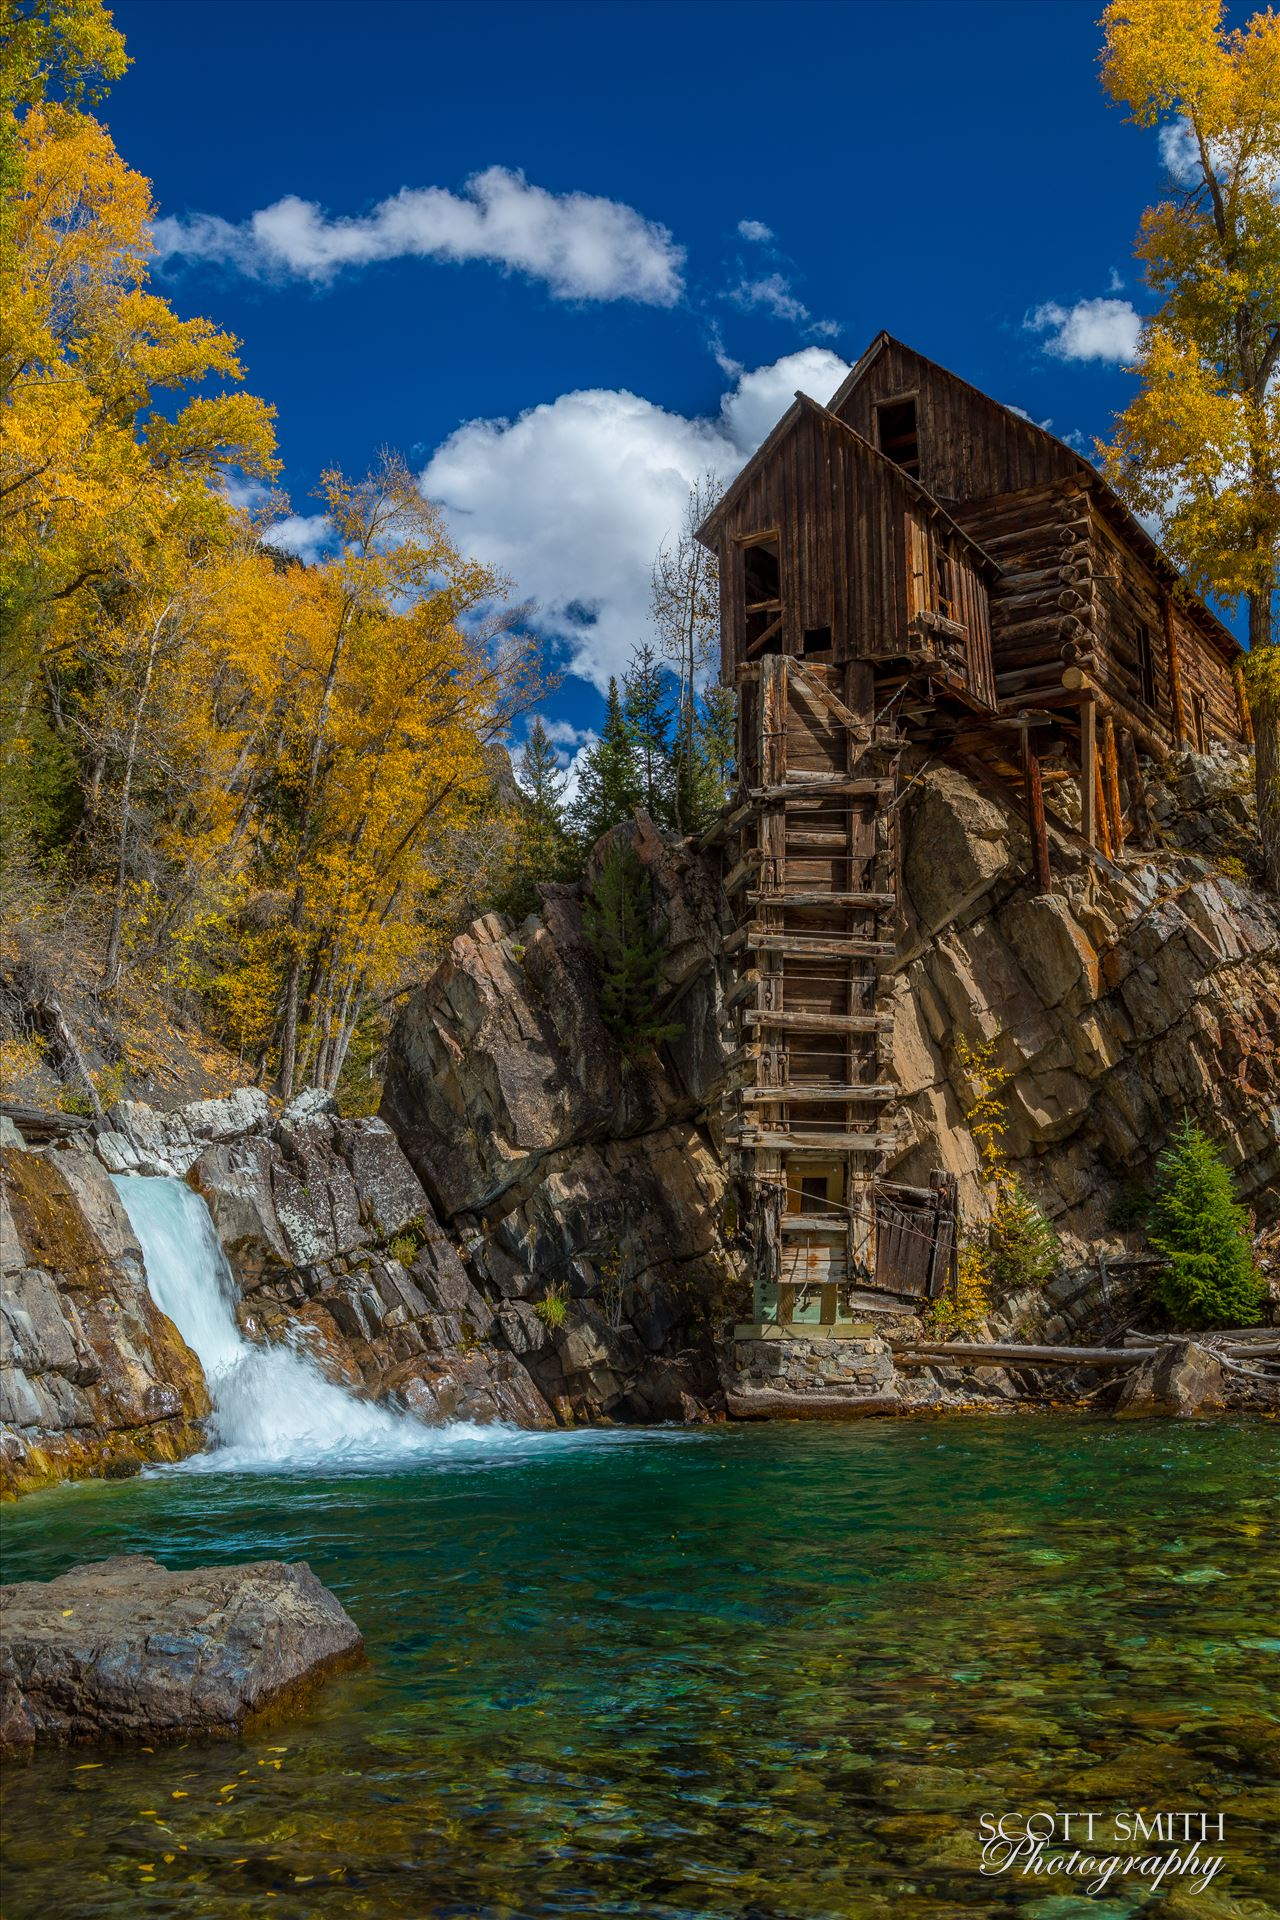 Crystal MIll No 3 The Crystal Mill, or the Old Mill is an 1892 wooden powerhouse located on an outcrop above the Crystal River in Crystal, Colorado by Scott Smith Photos